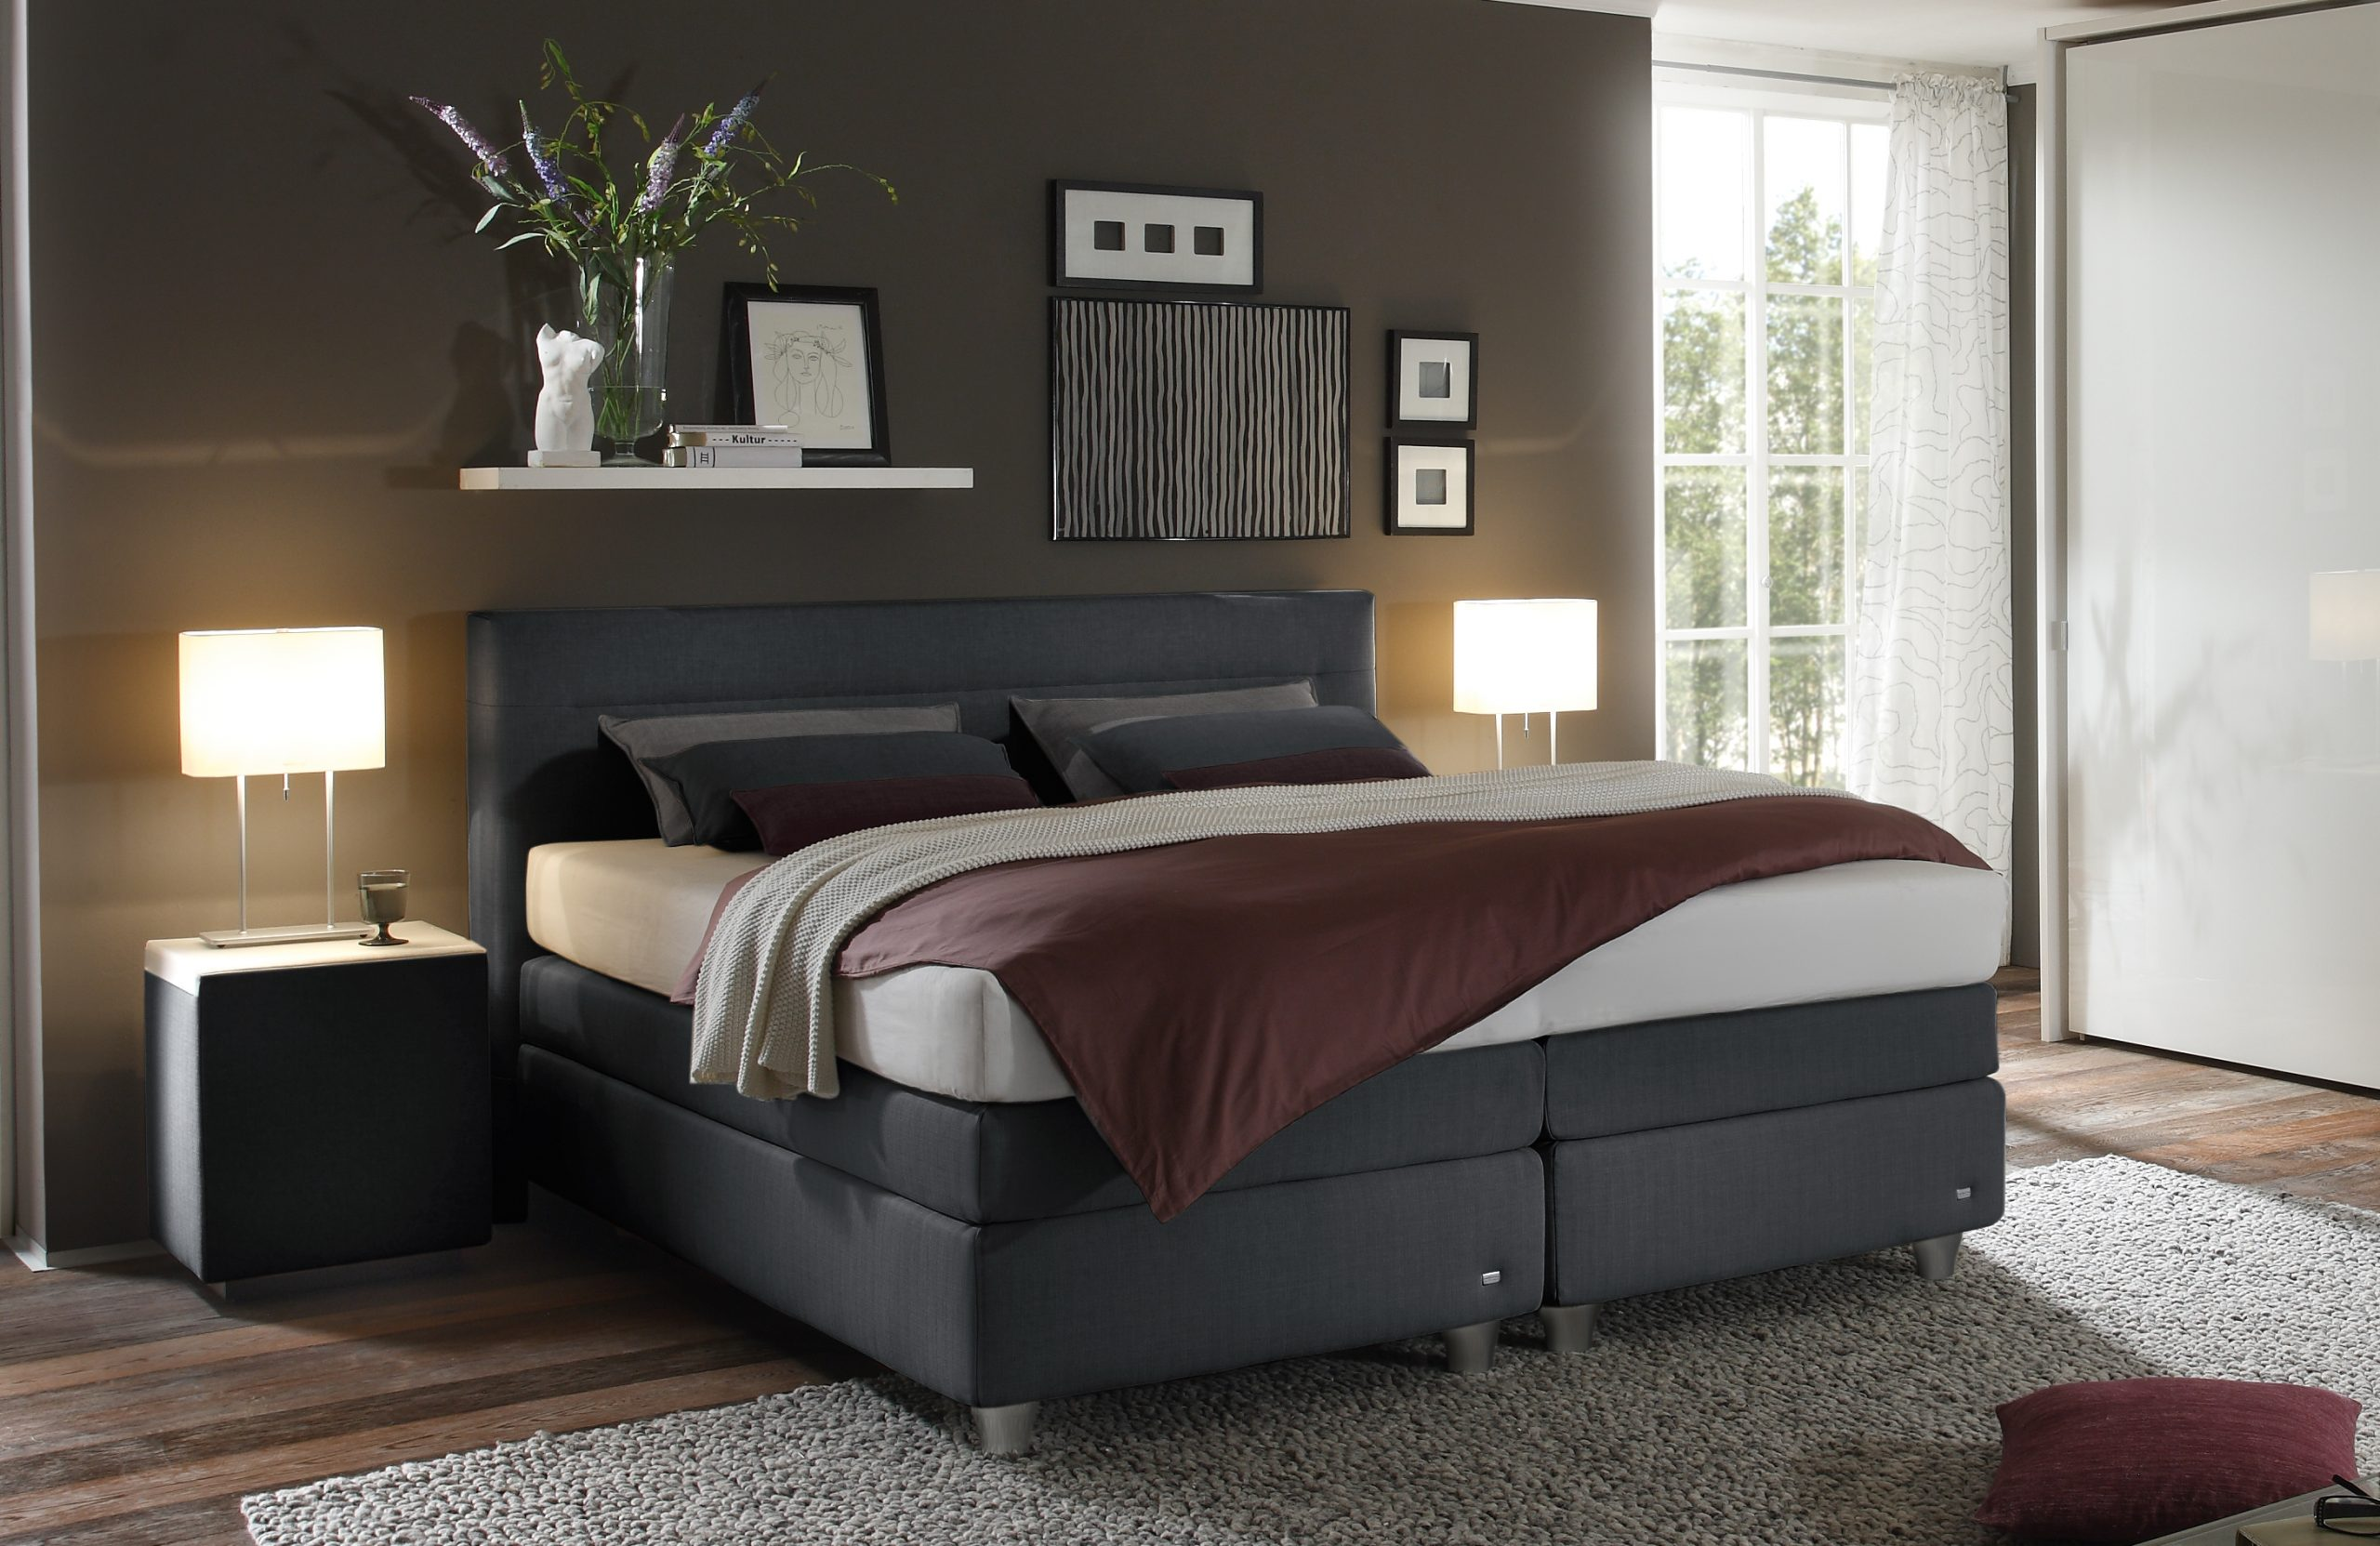 Full Size of Ruf Boxspringbett Milano Qlx Test Betten Boxspring Exclusiv Mit Motor Fabrikverkauf Rastatt Composium Schlafzimmer Set Bett Preise Wohnzimmer Ruf Milano Boxspringbett